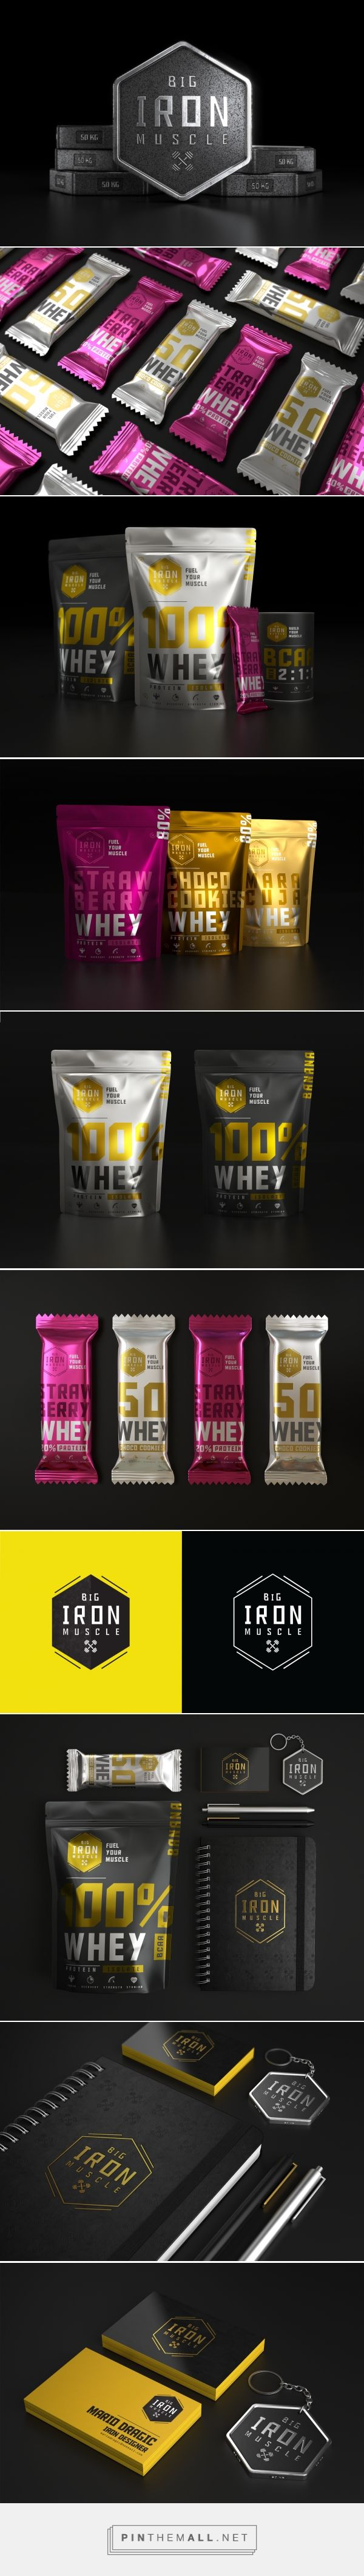 Big Iron Muscle supplements packaging design by Mario Dragic (Serbia) - http://www.packagingoftheworld.com/2016/08/big-iron-muscle.html